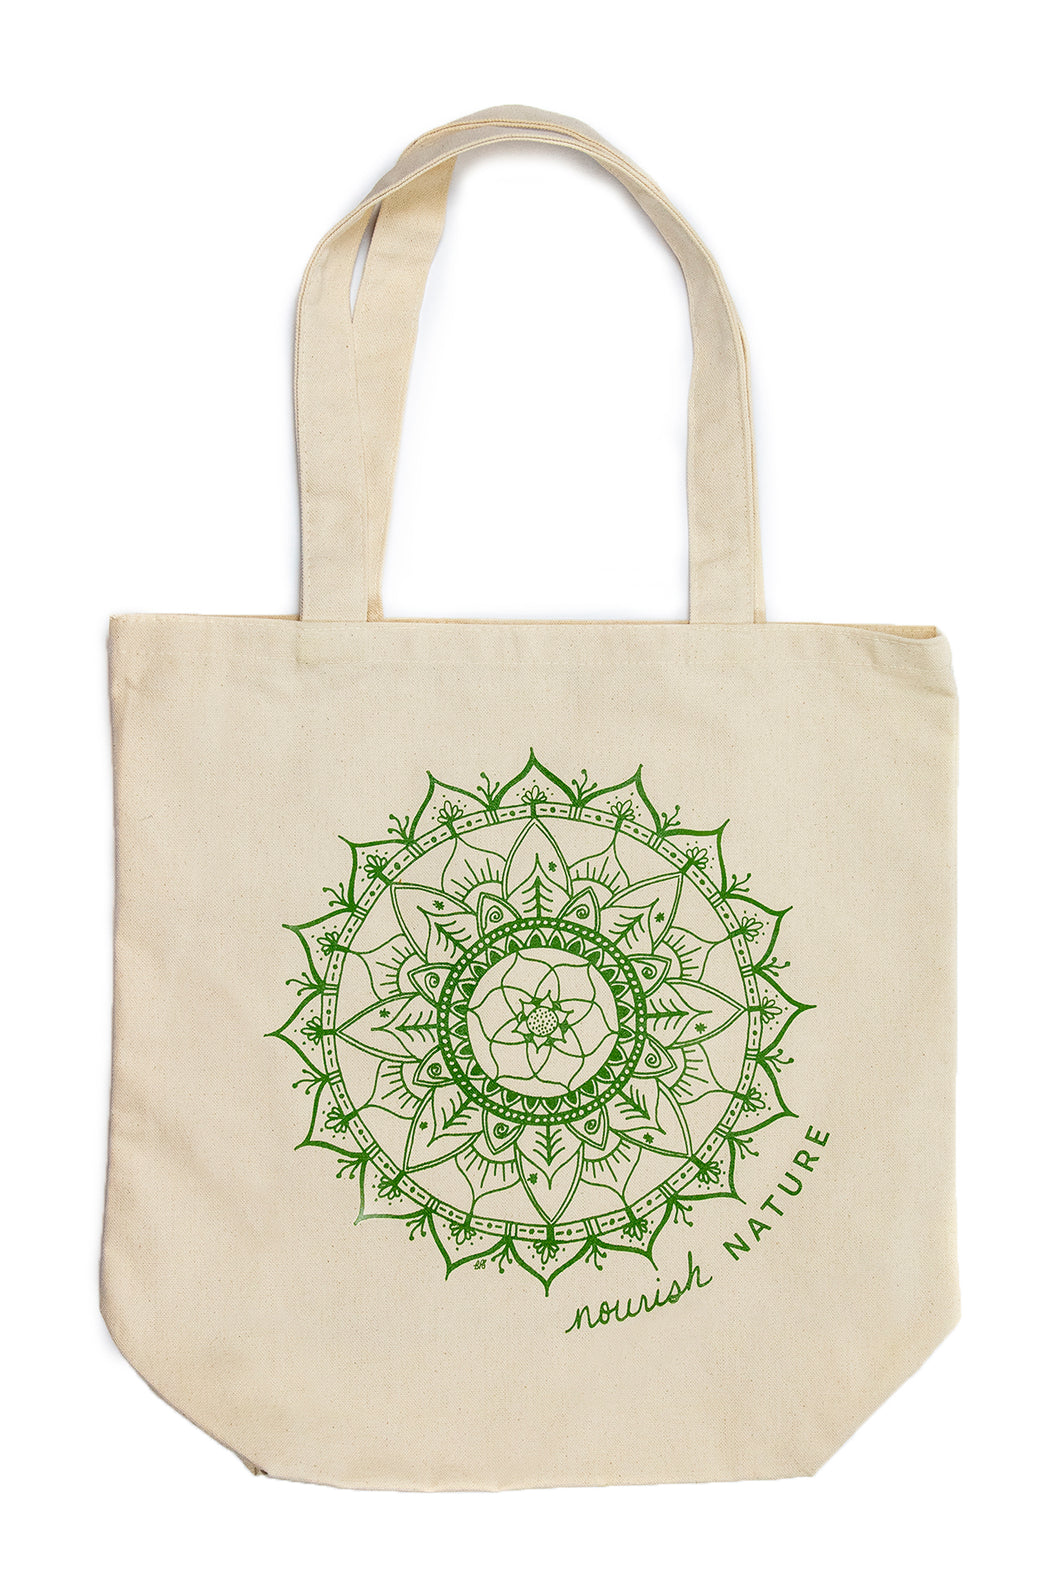 Nourish Nature Grocery Tote (provides 8 Meals)